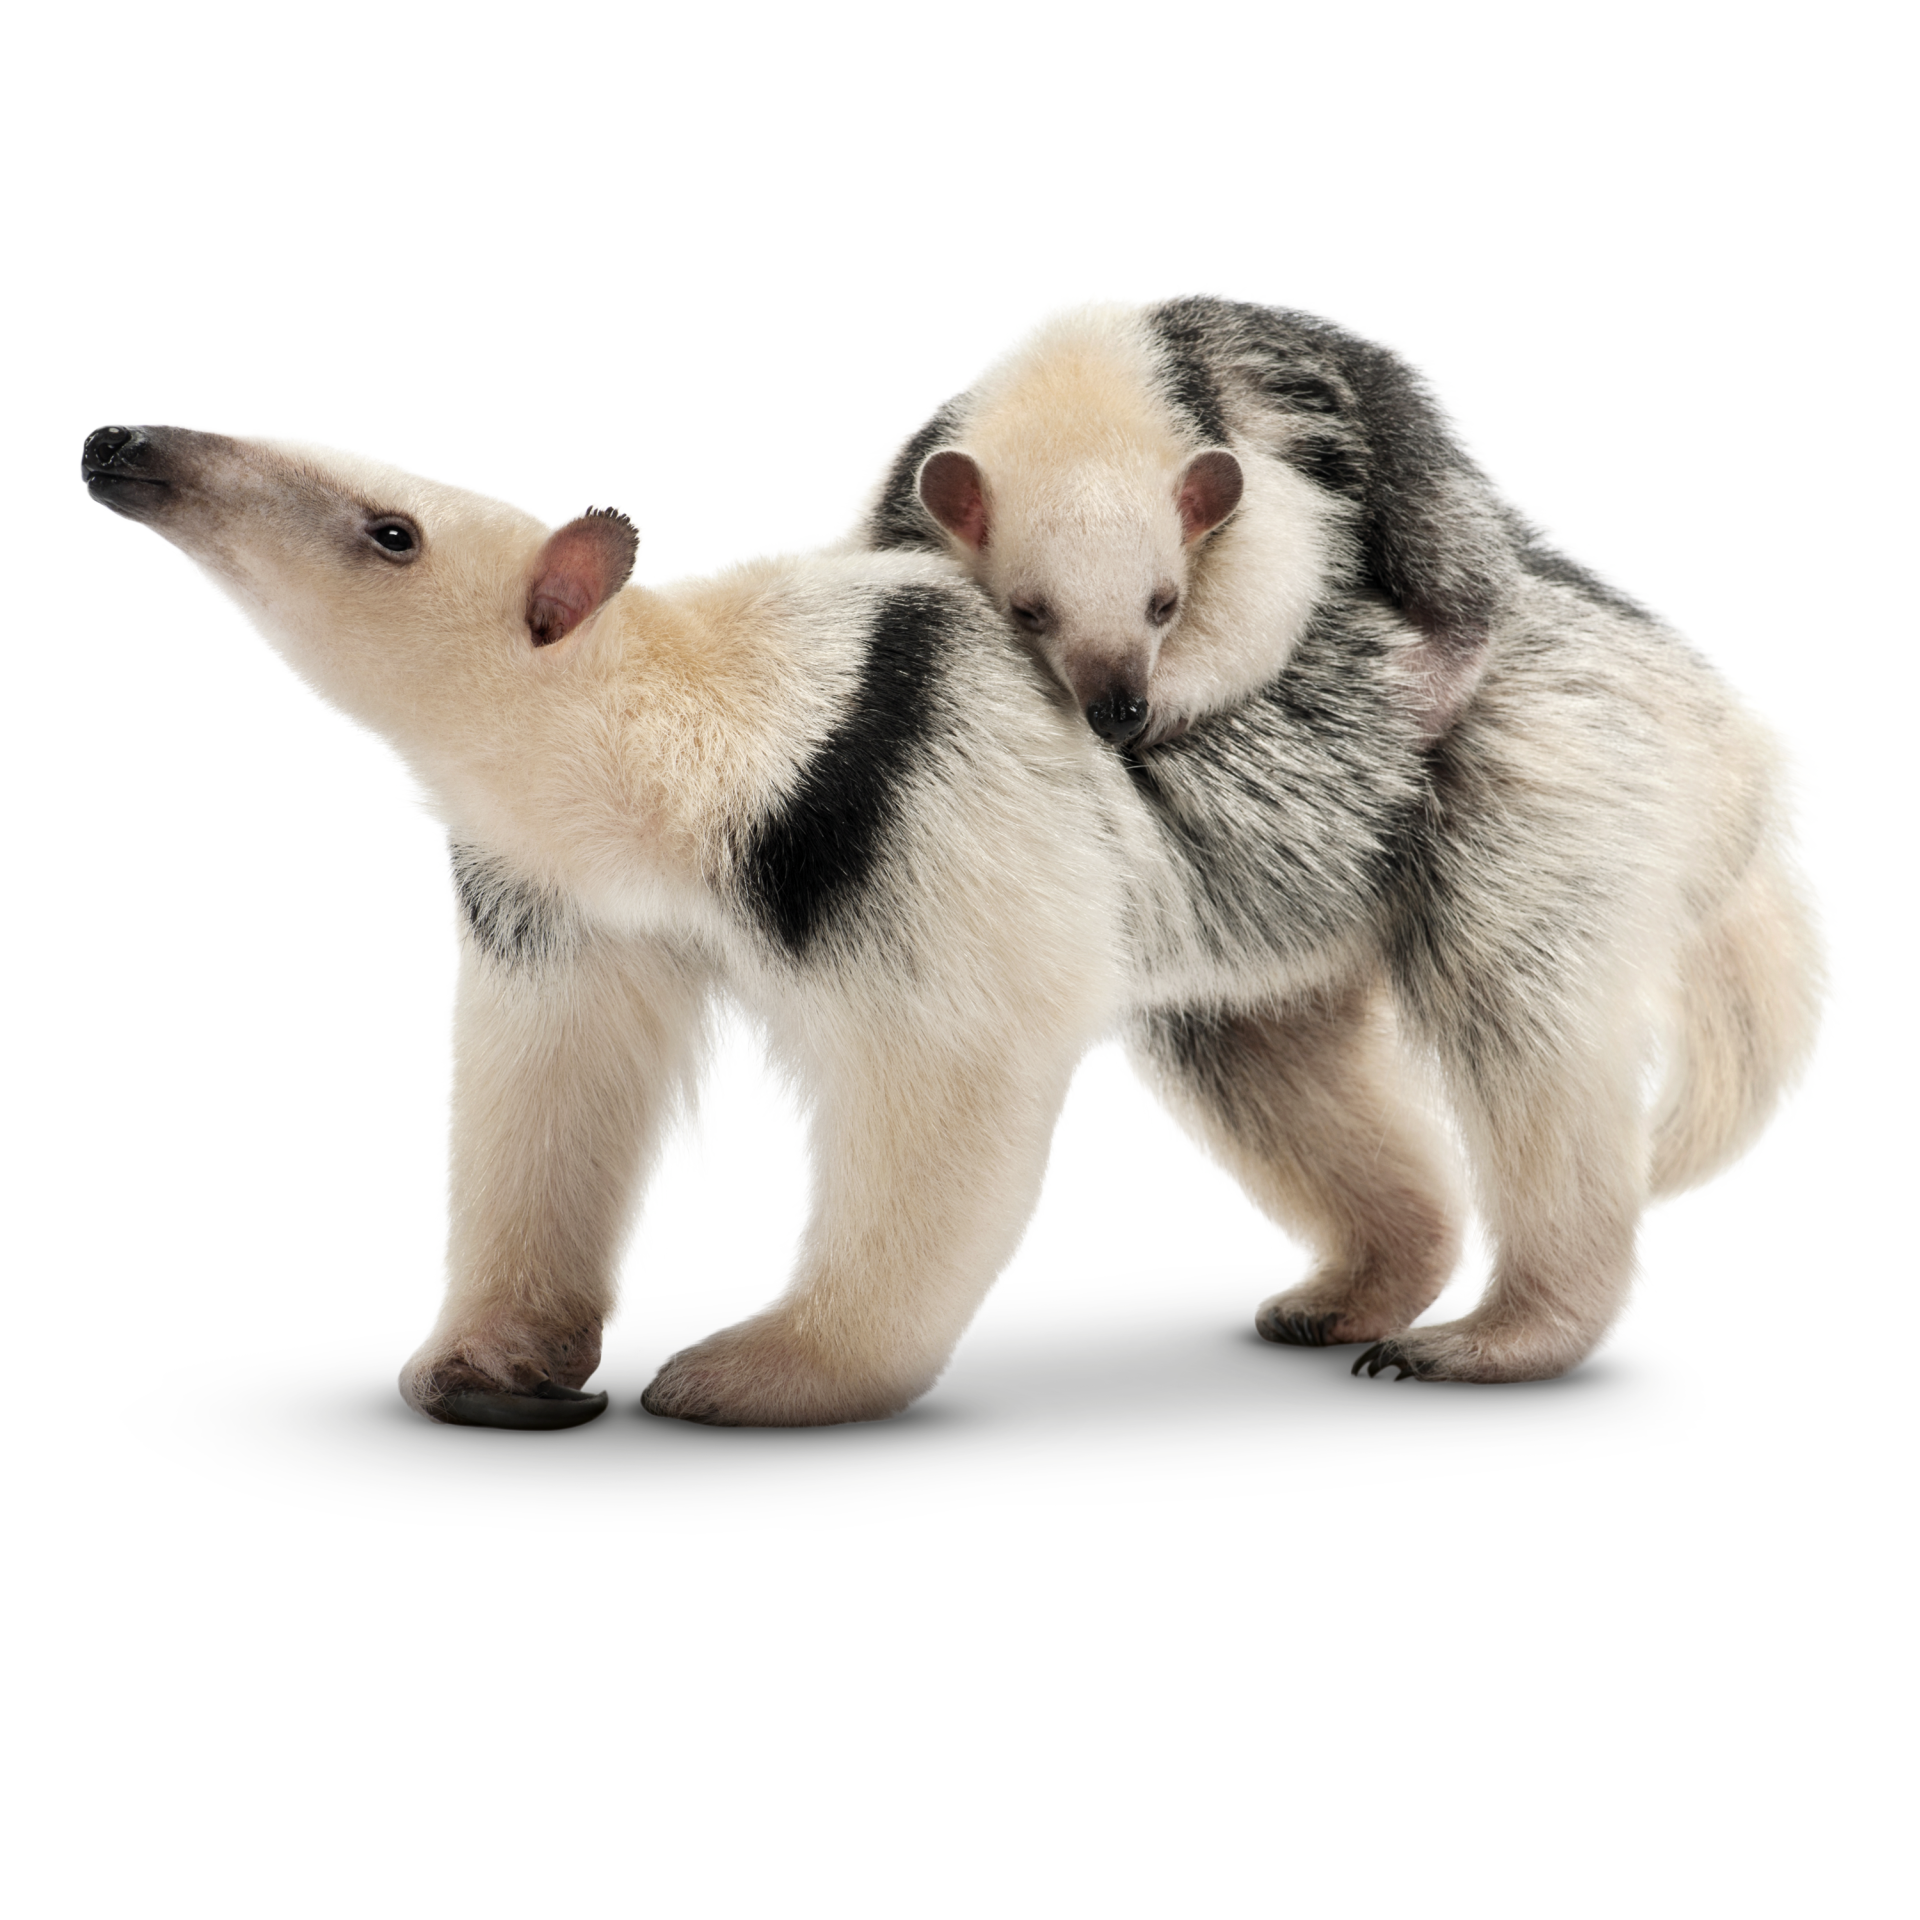 sloth facts for kids anteater facts dk find out